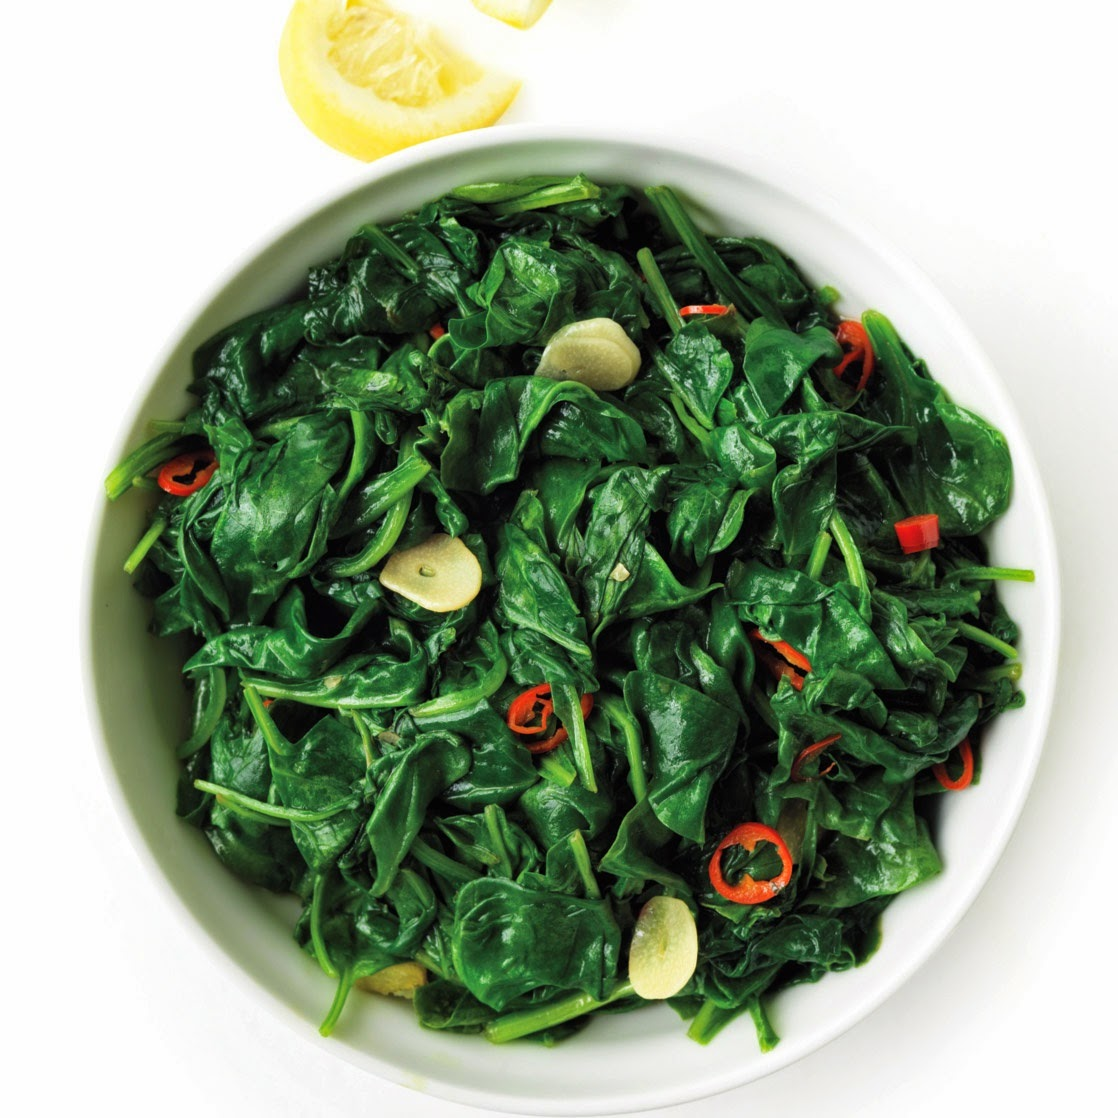 Healthy Food - Spinach